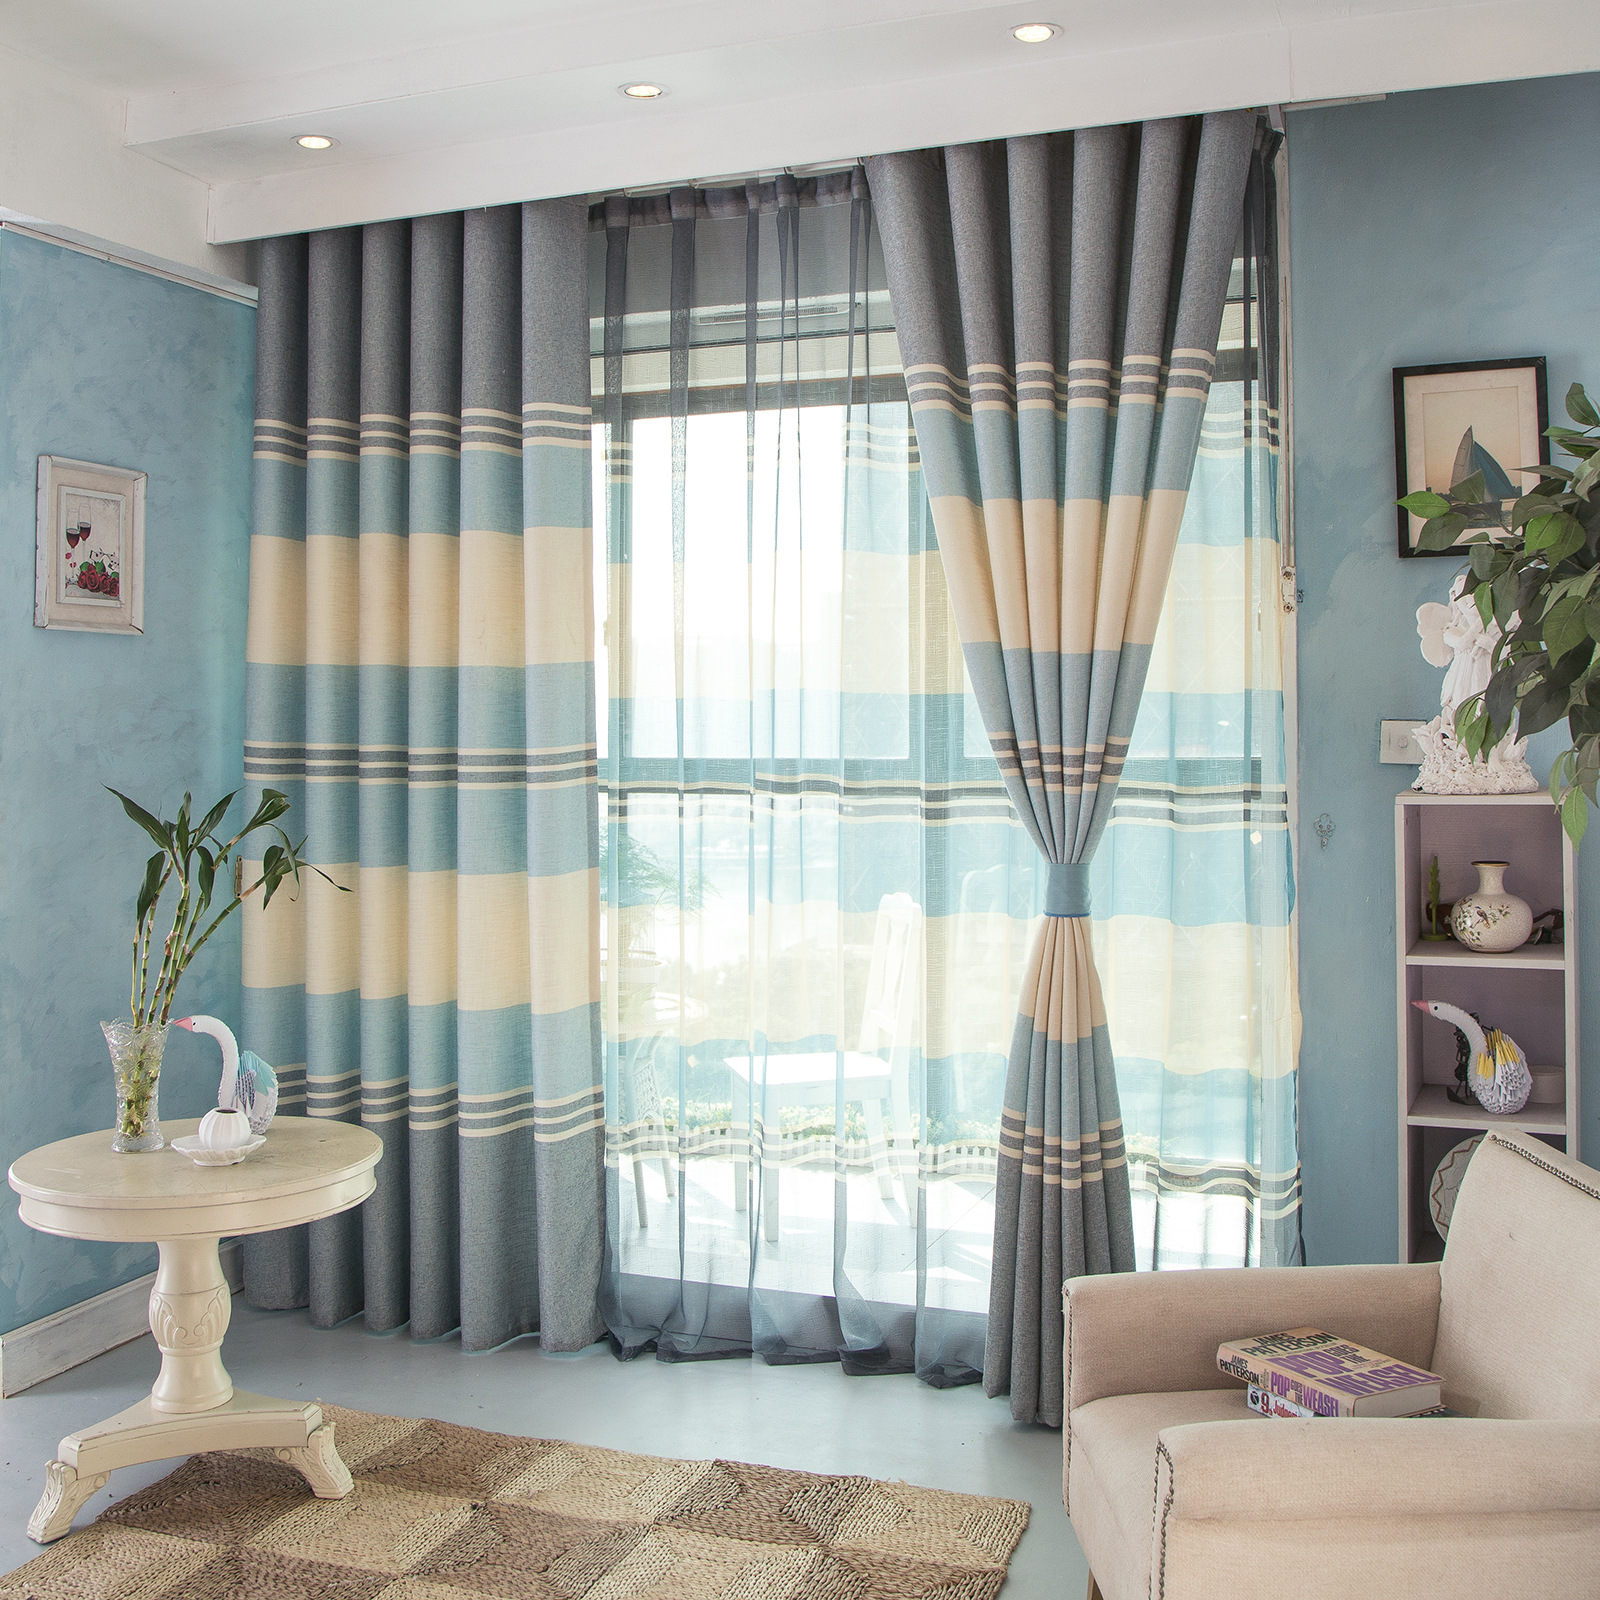 Blackout Curtains For Living Room Hotel European Simple: ZHH New Arrival Curtains European Simple Design Window